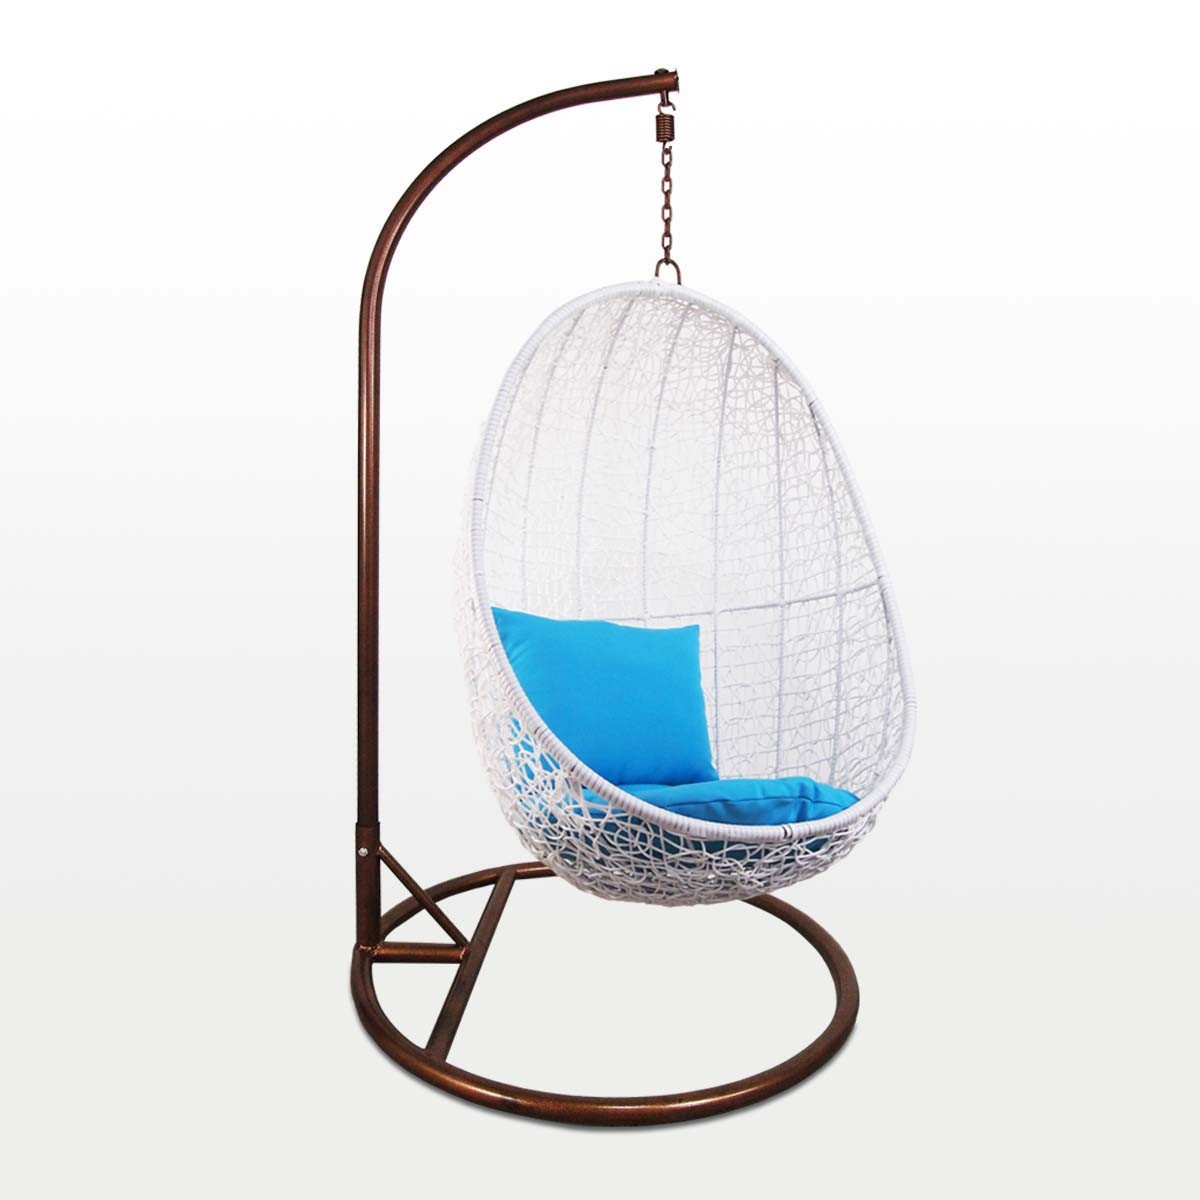 White Cocoon Swing Chair Blue Cushion Outdoor Garden